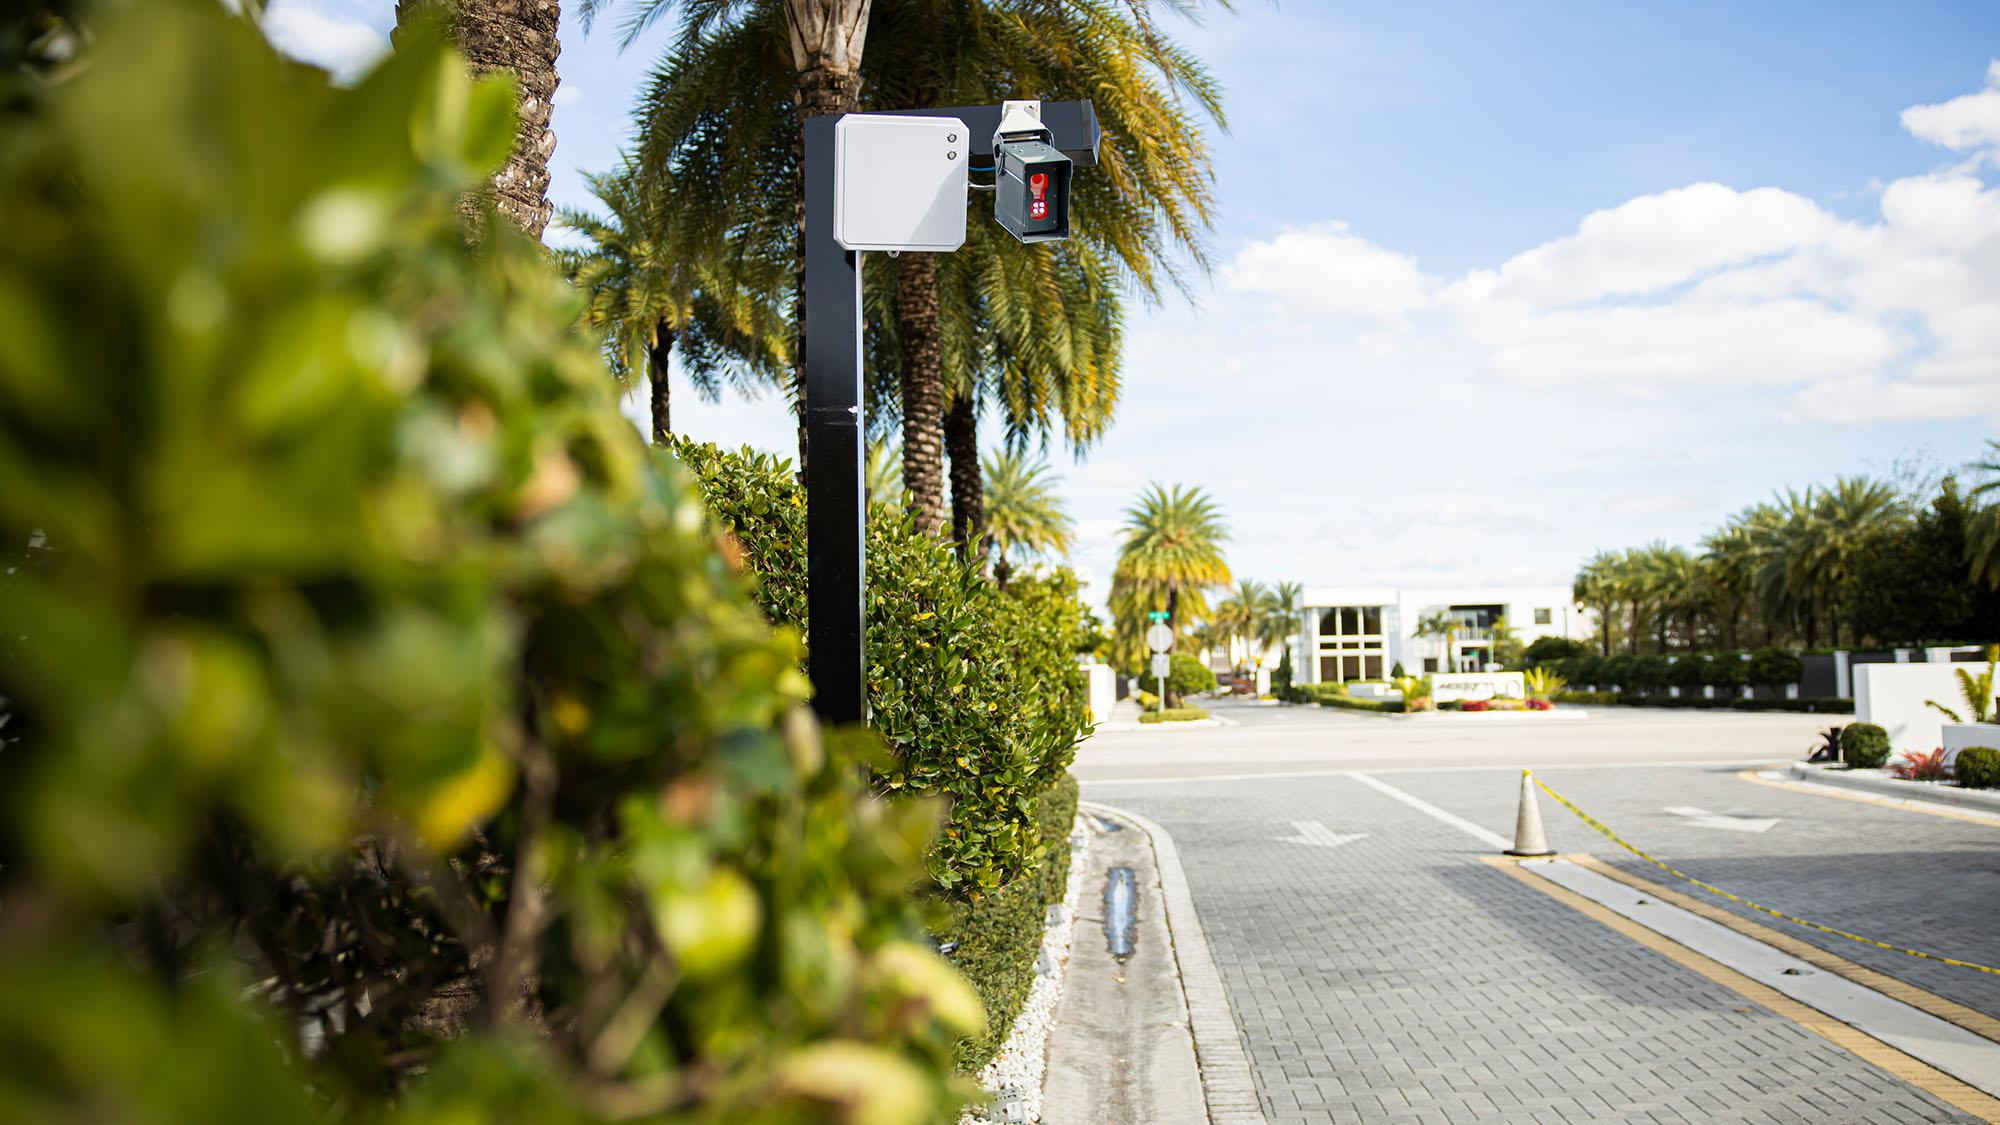 Survision: License Plate Recognition (LPR) Cameras for Parking Solutions